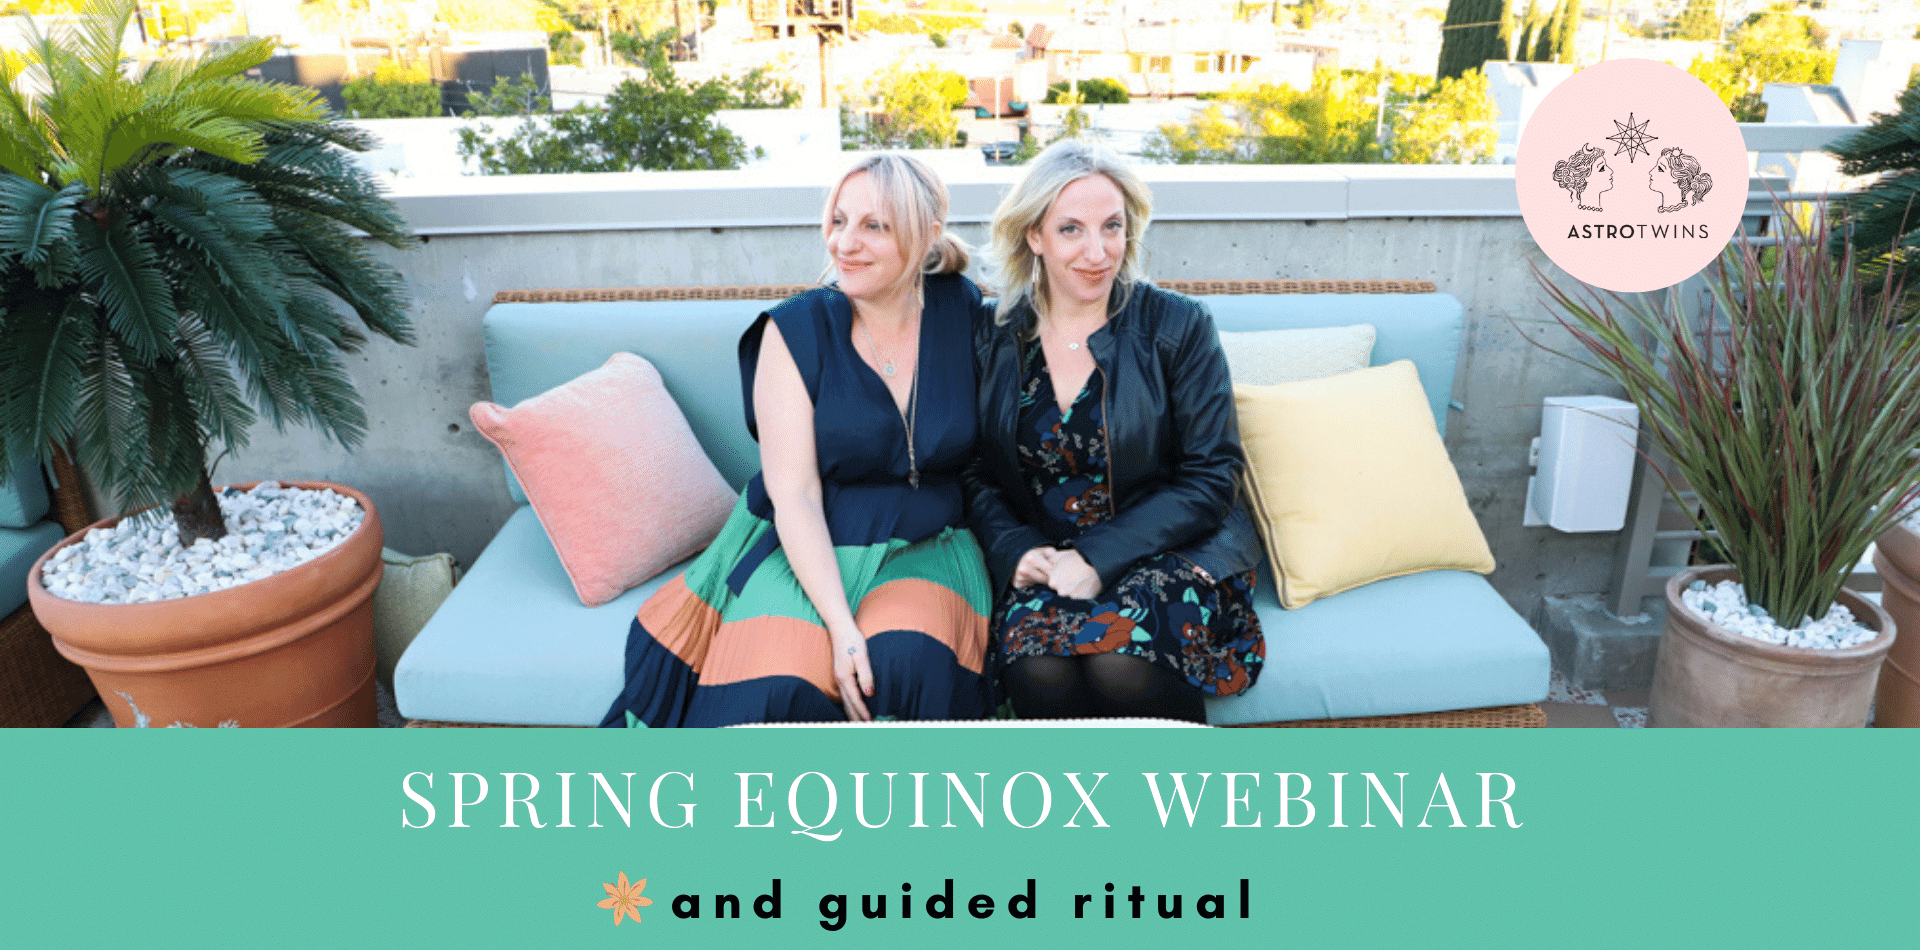 spring equinox reset ritual astrotwins for astrostyle.com